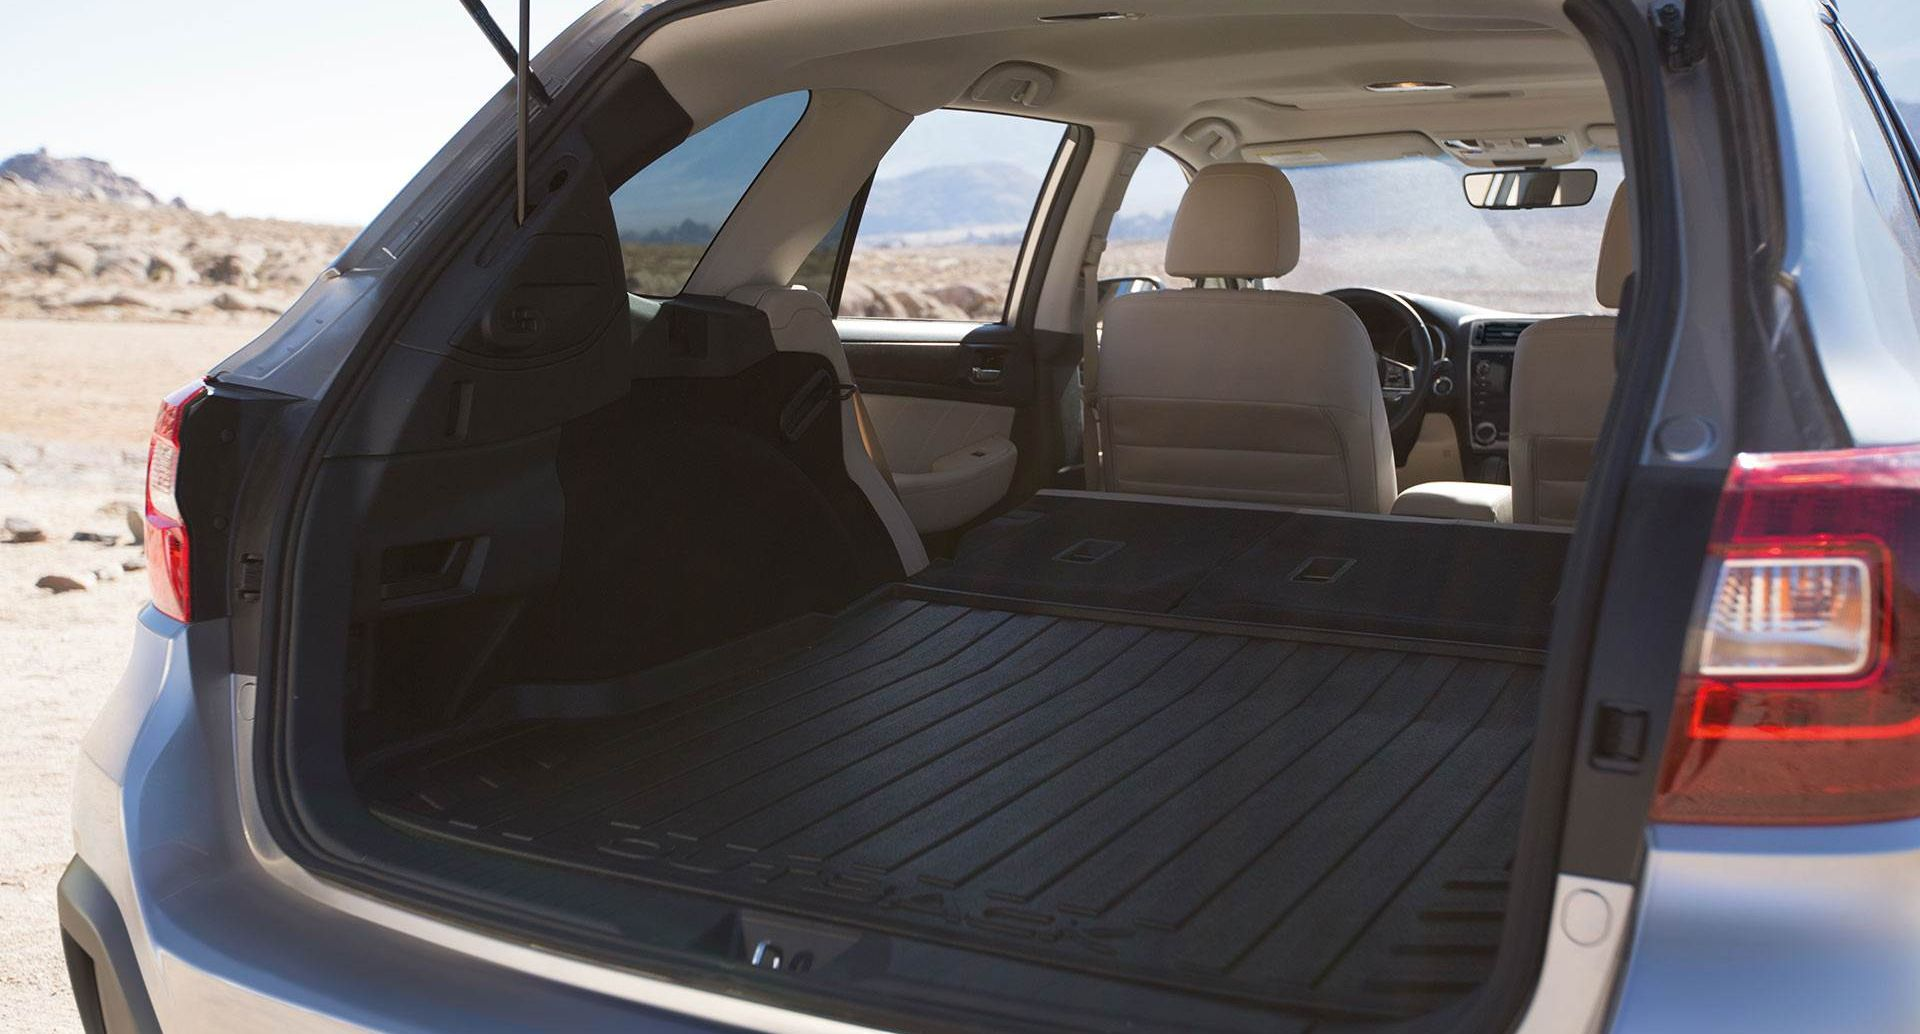 Cargo Space in the Outback